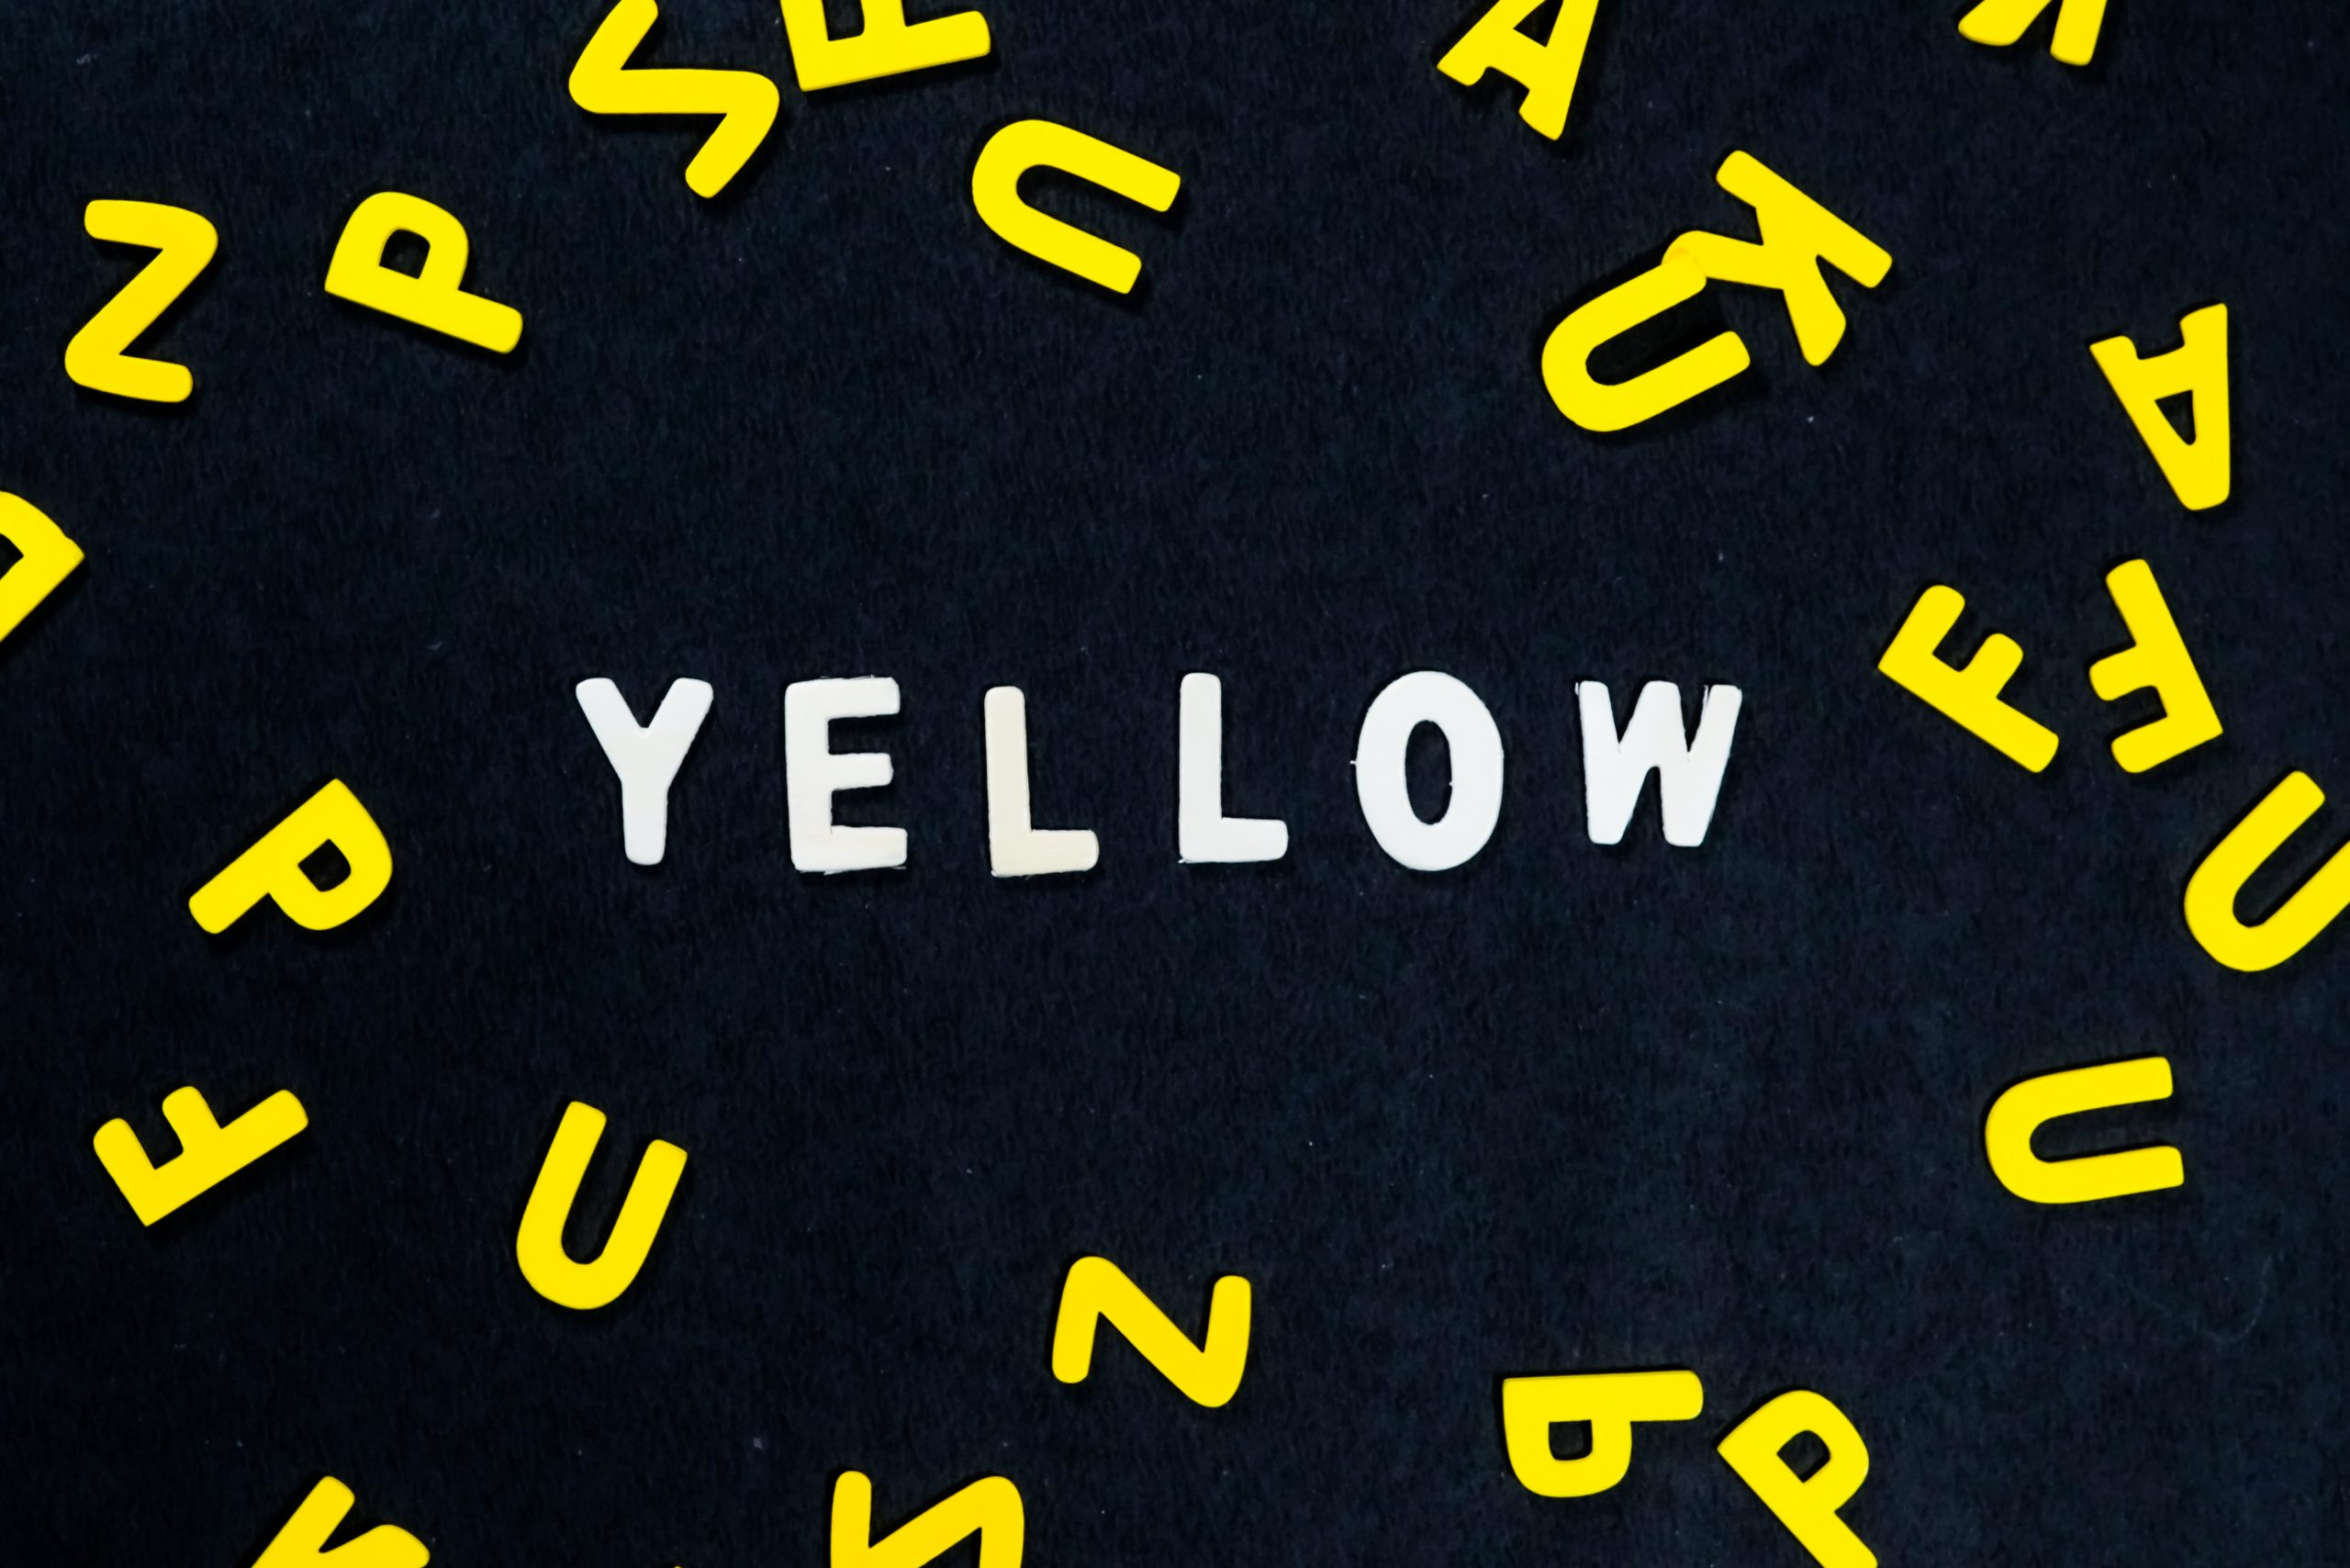 yellow spelt out